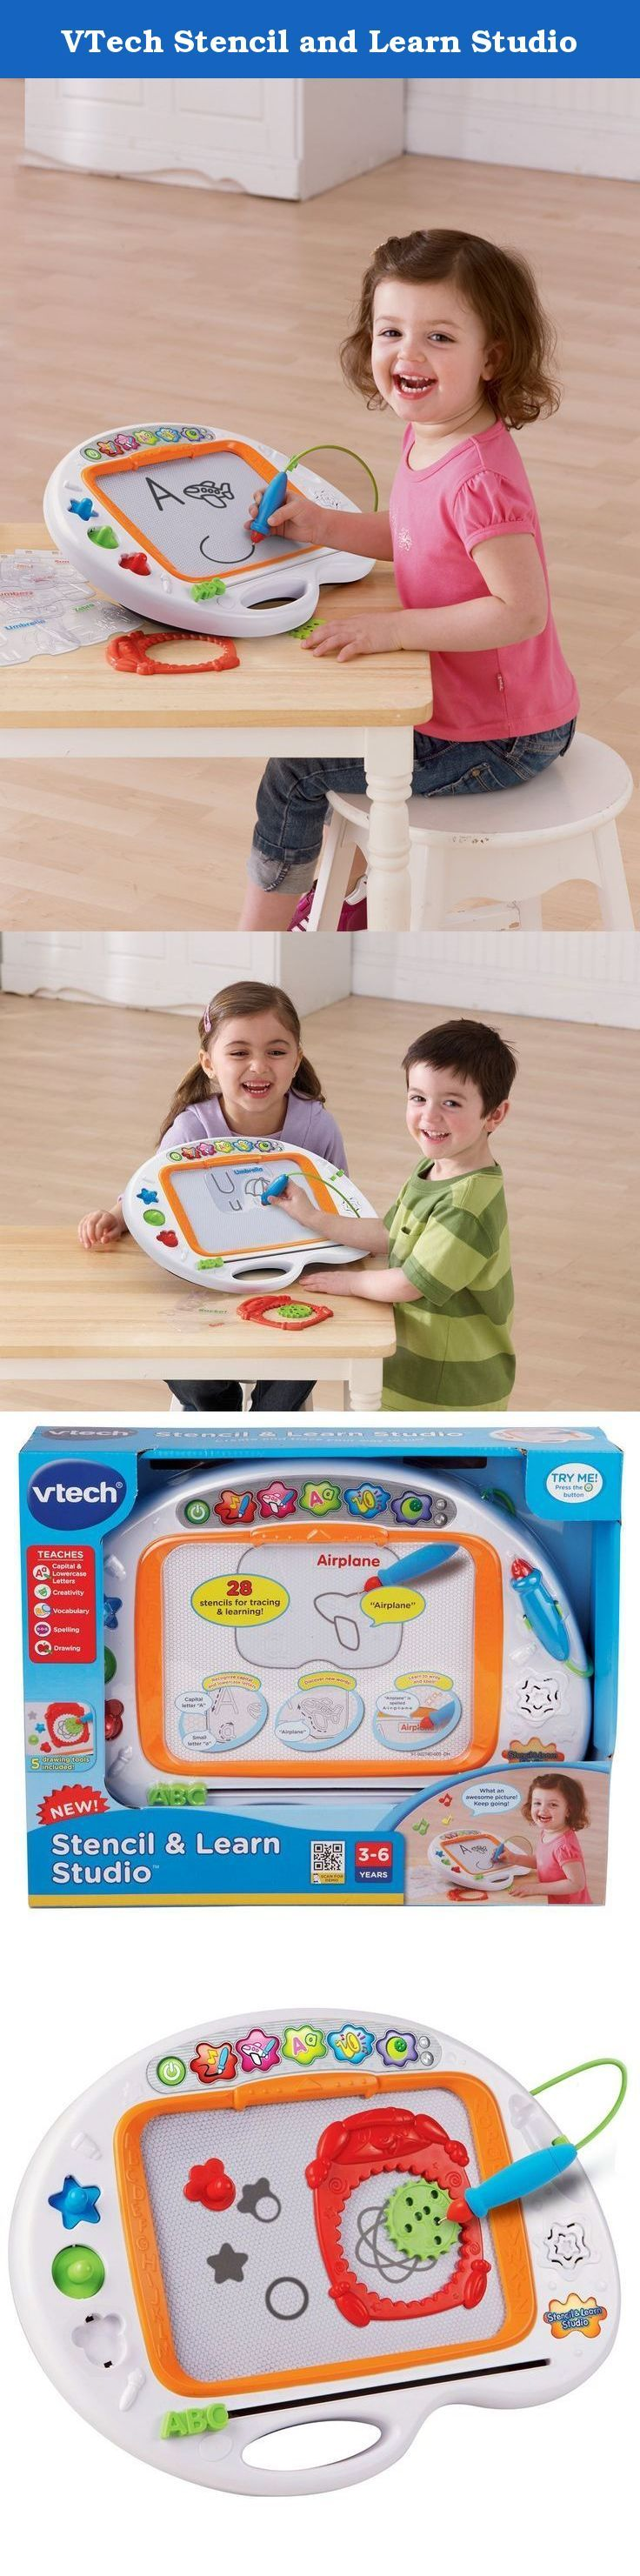 VTech Stencil and Learn Studio. The VTech Stencil & Learn Studio is an innovative magnetic drawing board that will enhance your child's creativity as they learn! This electronic learning toy comes with 28 different stencils that feature letters, numbers, and shapes. As your child inserts each stencil into the special slot, the board recognizes the card and verbally guides your child through tracing and writing what's on the card. Also included are Scribble Gears design tools, three…